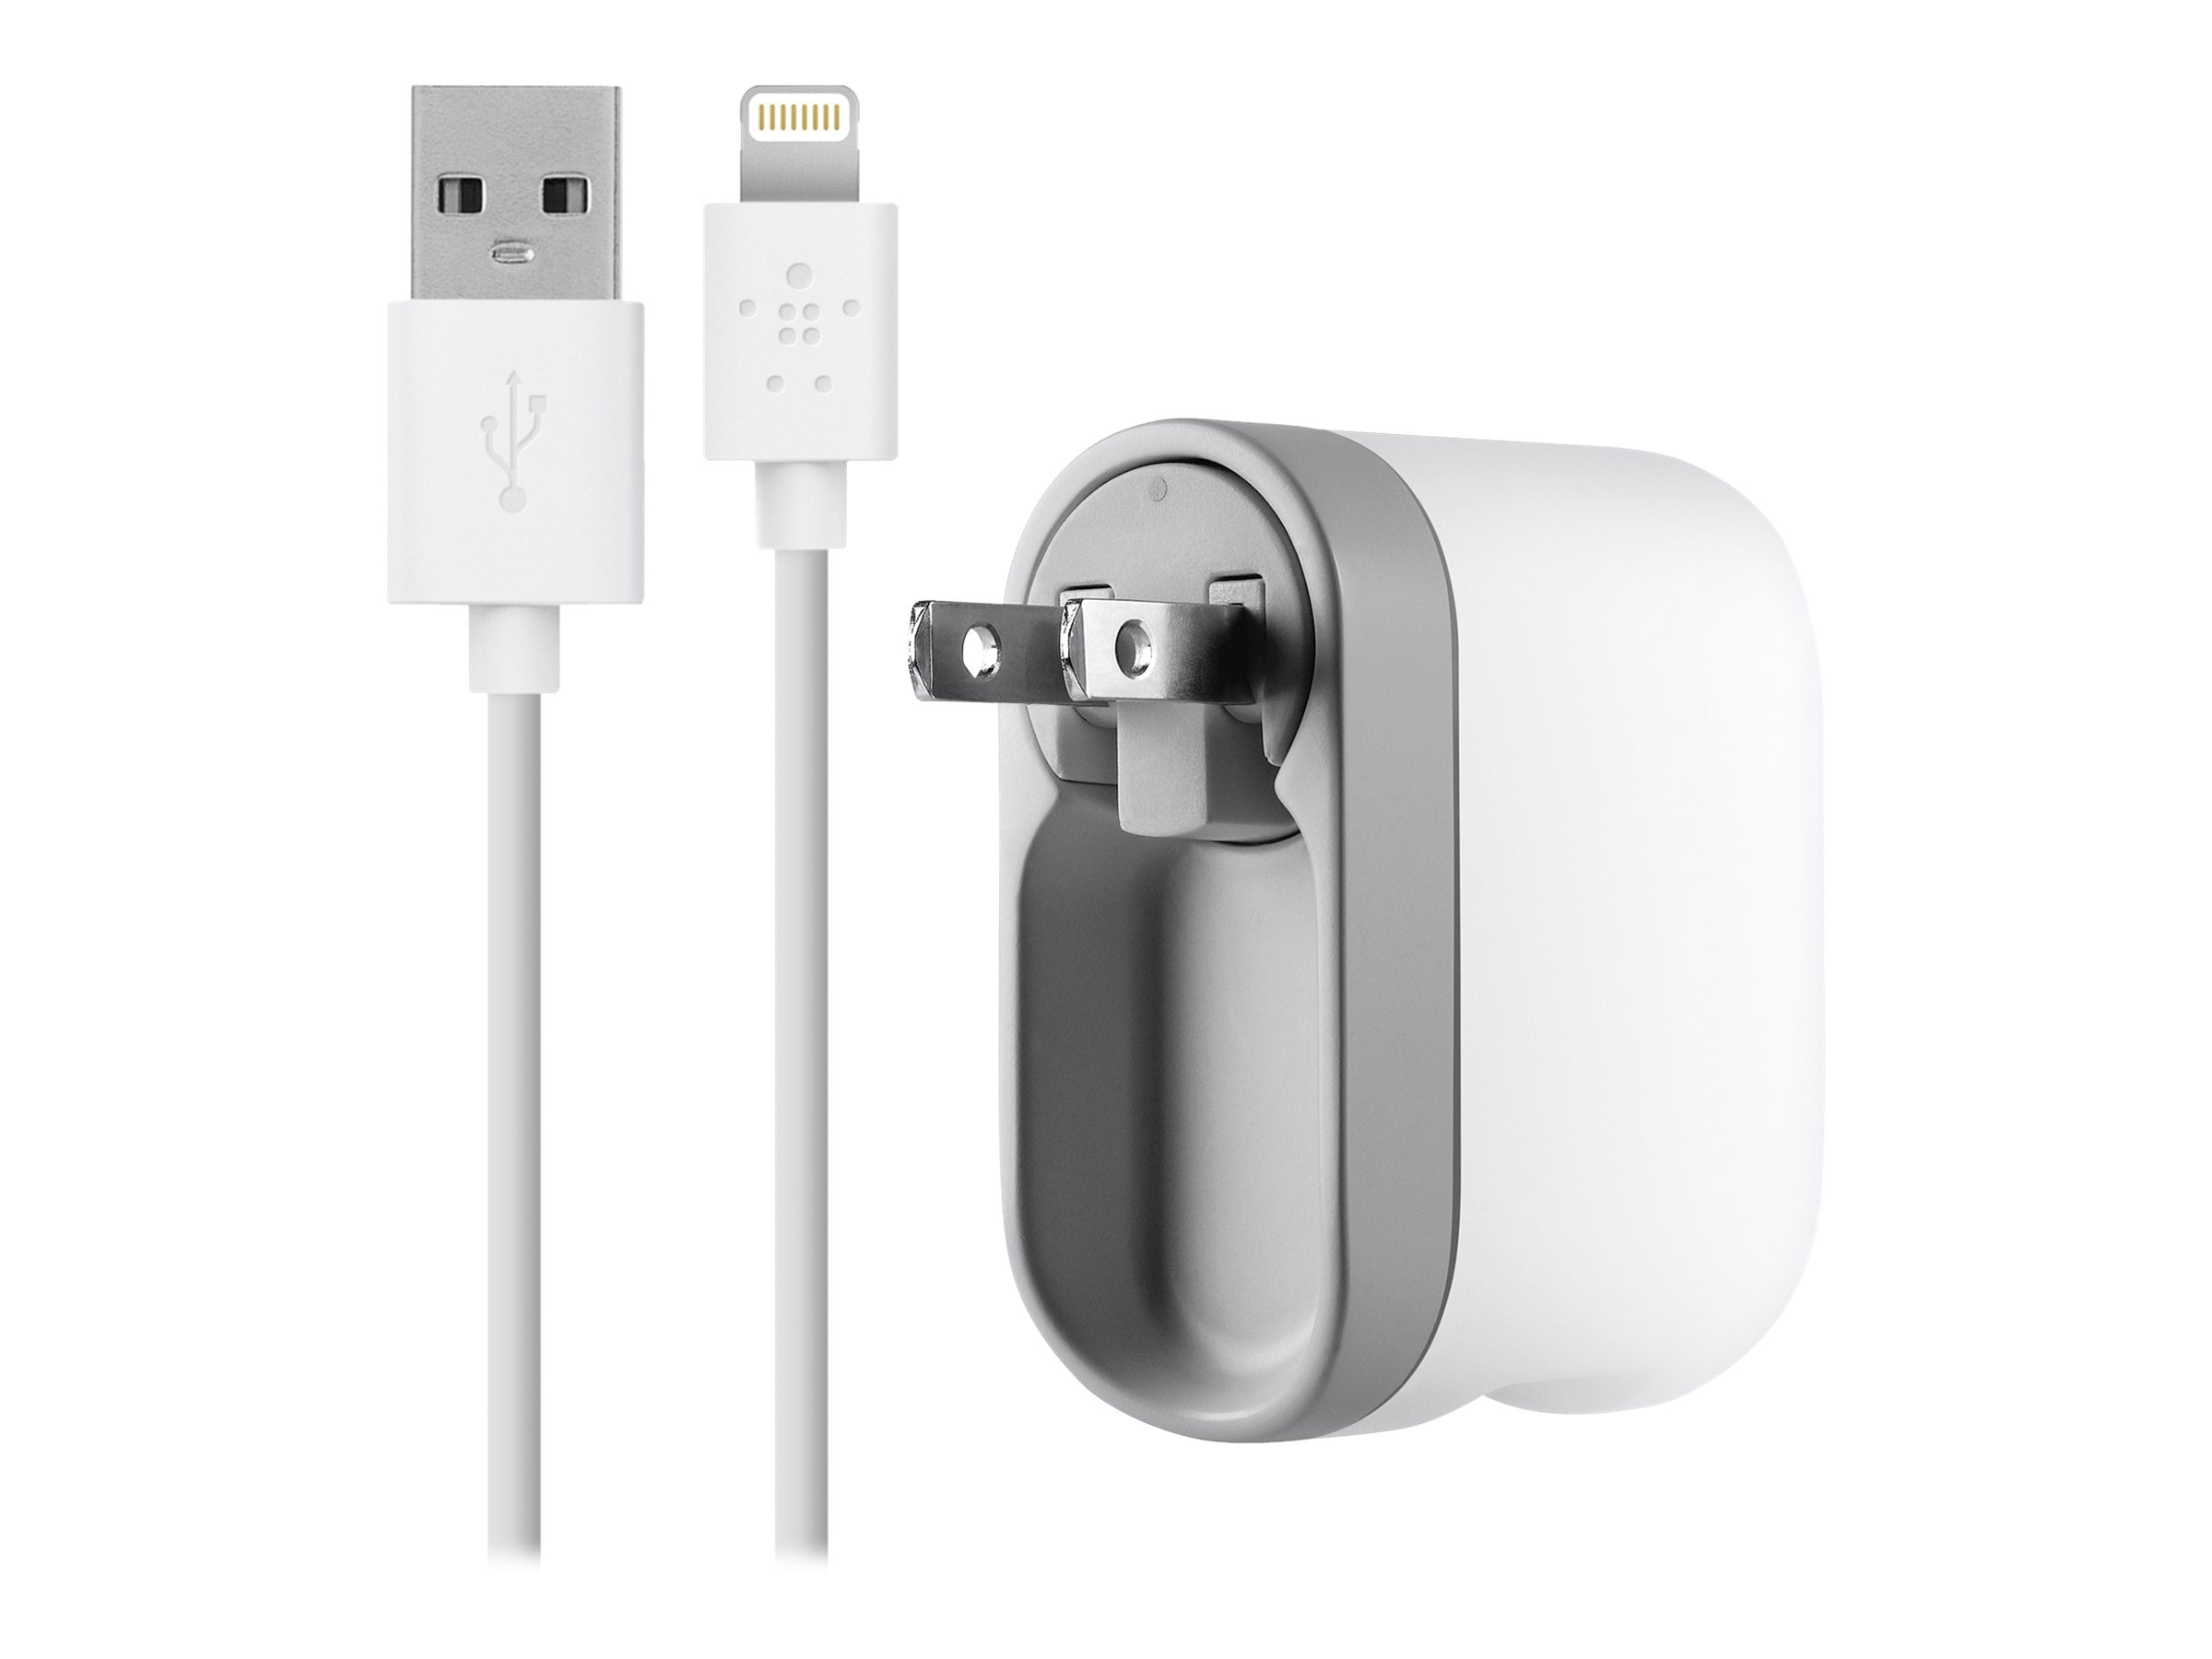 Belkin Swivel Charger + Lightning Charge Sync Cable 2.1A, White, F8J032TT04-WHT